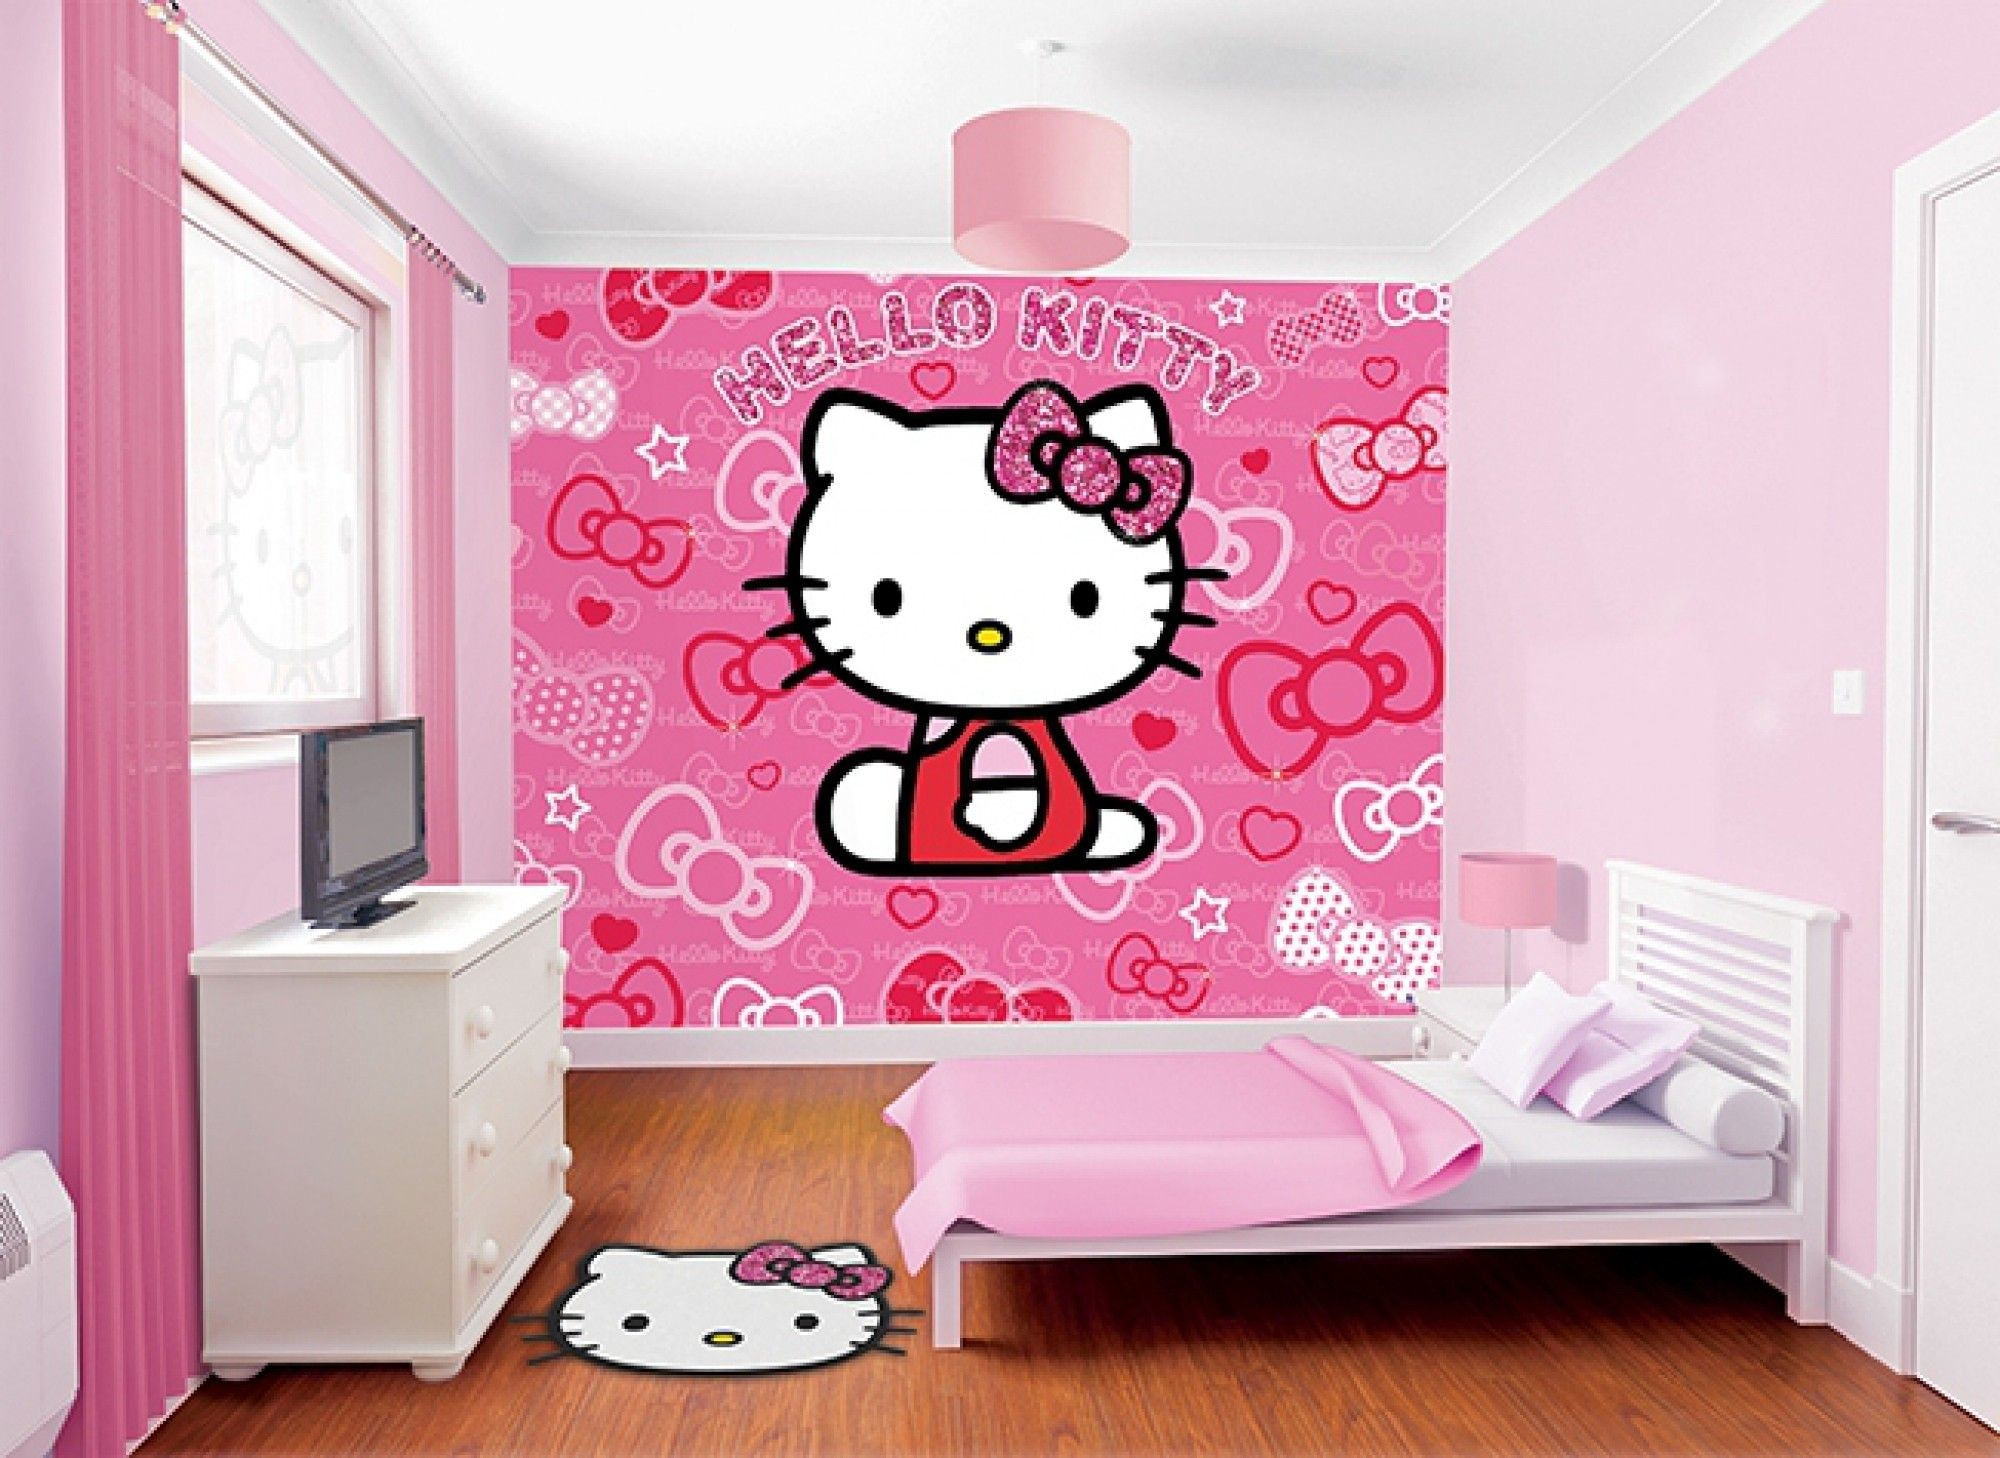 2000x1458 Simple Kids Girl Ikea Bedroom Furniture Ideas For Small Spaces Amusing Hello  Kitty Wallpaper Girls In ...